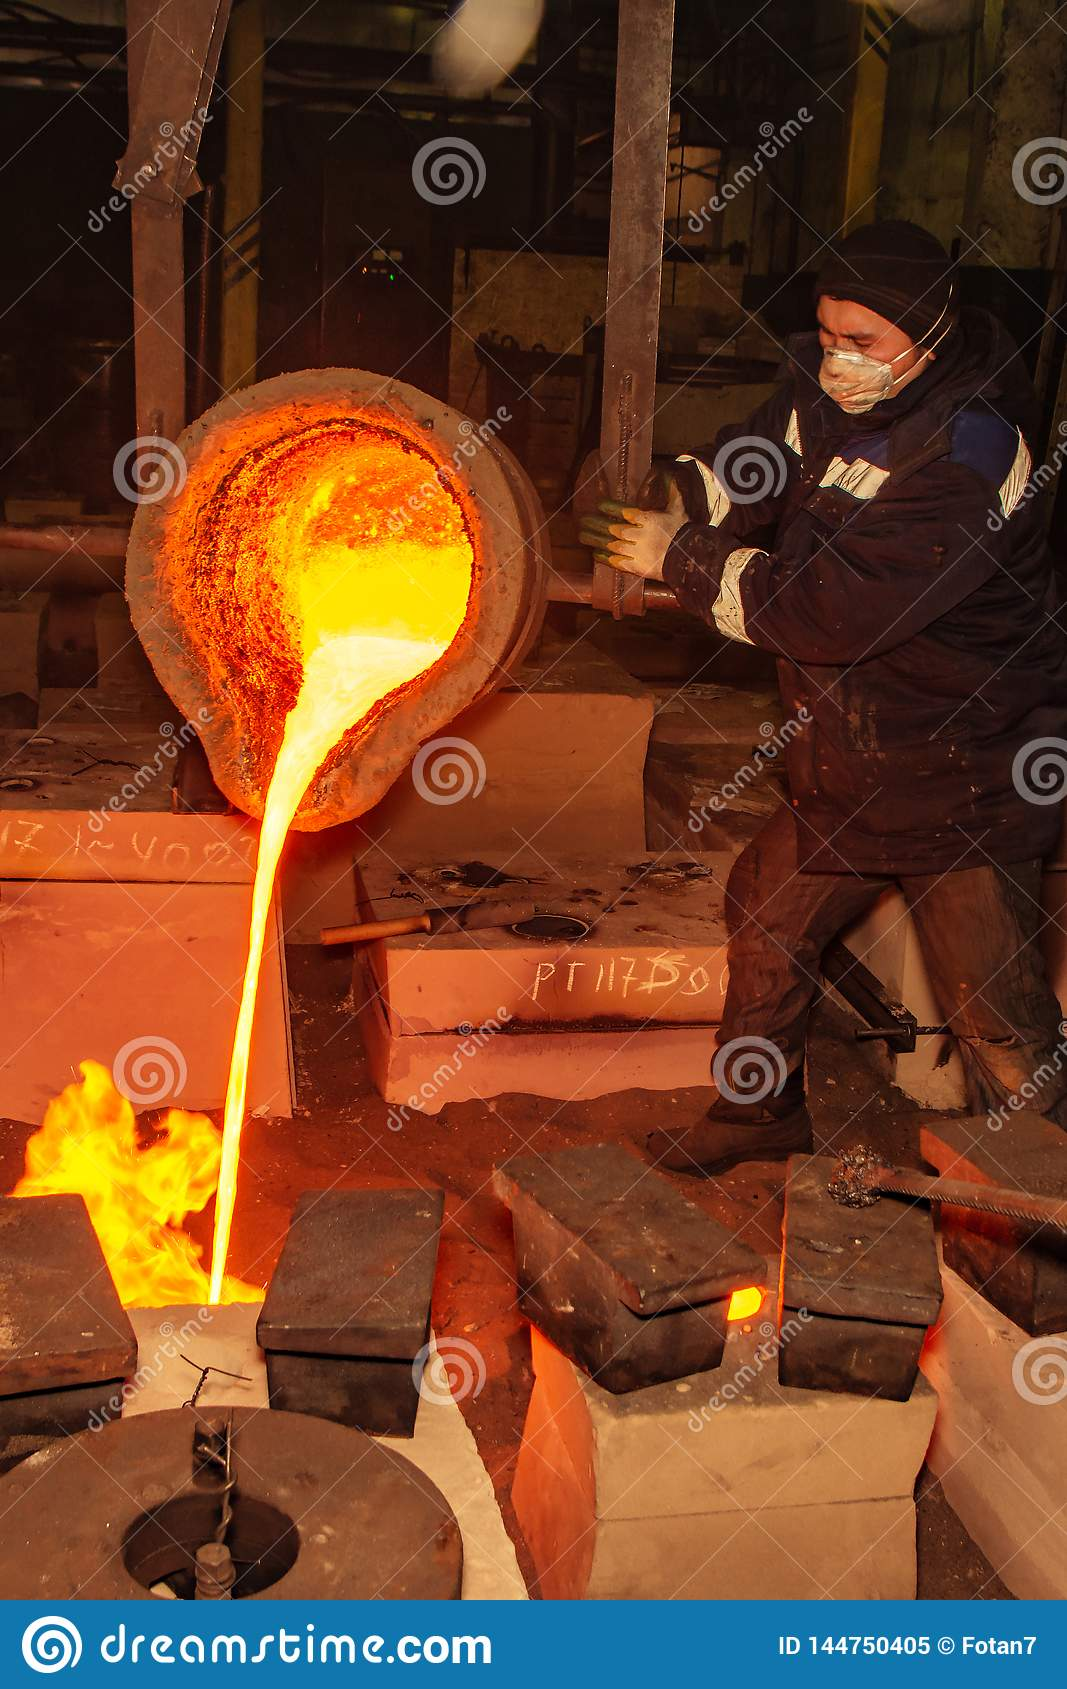 Russia, Ryazan 14 Feb 2019 - worker pours remnants of molten metal in factory of metal casting process